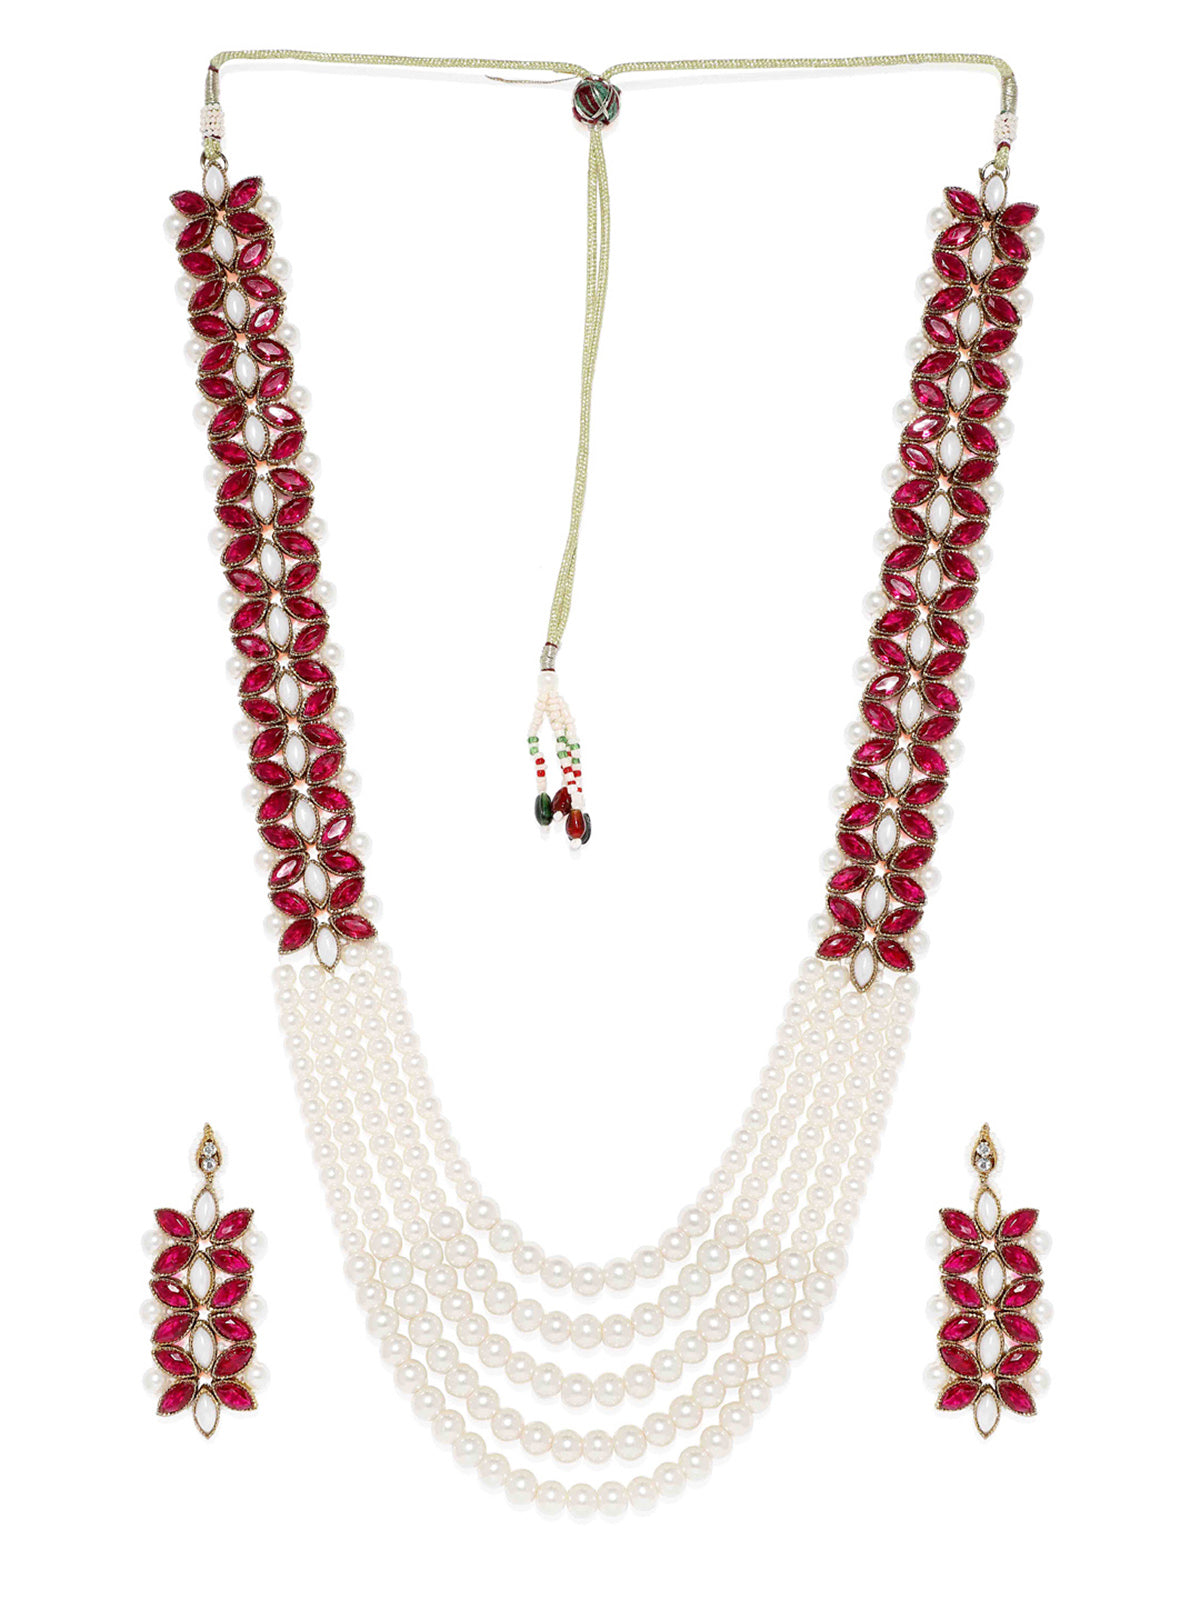 Zaveri Pearls Long Multi Layer Kundan And Pearl Necklace Set-ZAVERI PEARLS1-Necklace Set